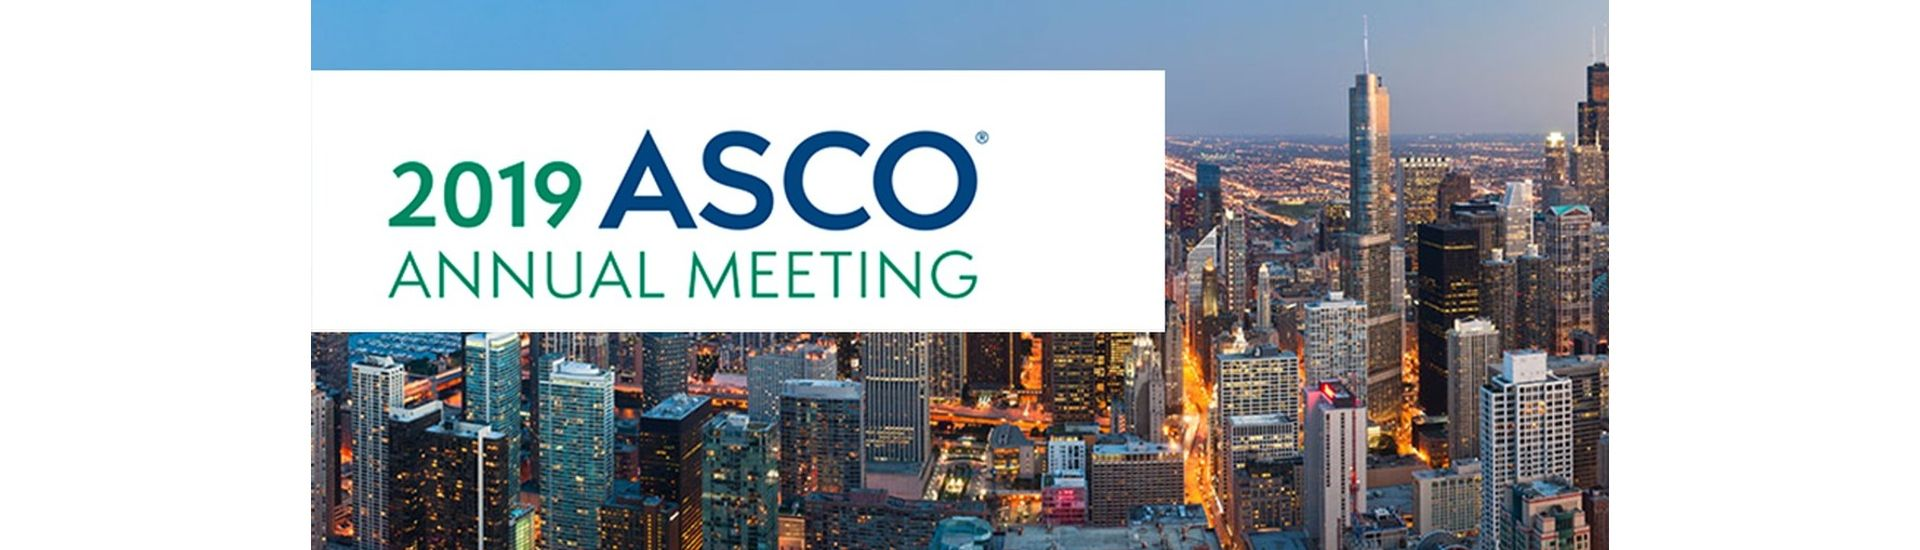 S.A.B Meeting in Chicago, during ASCO 2019